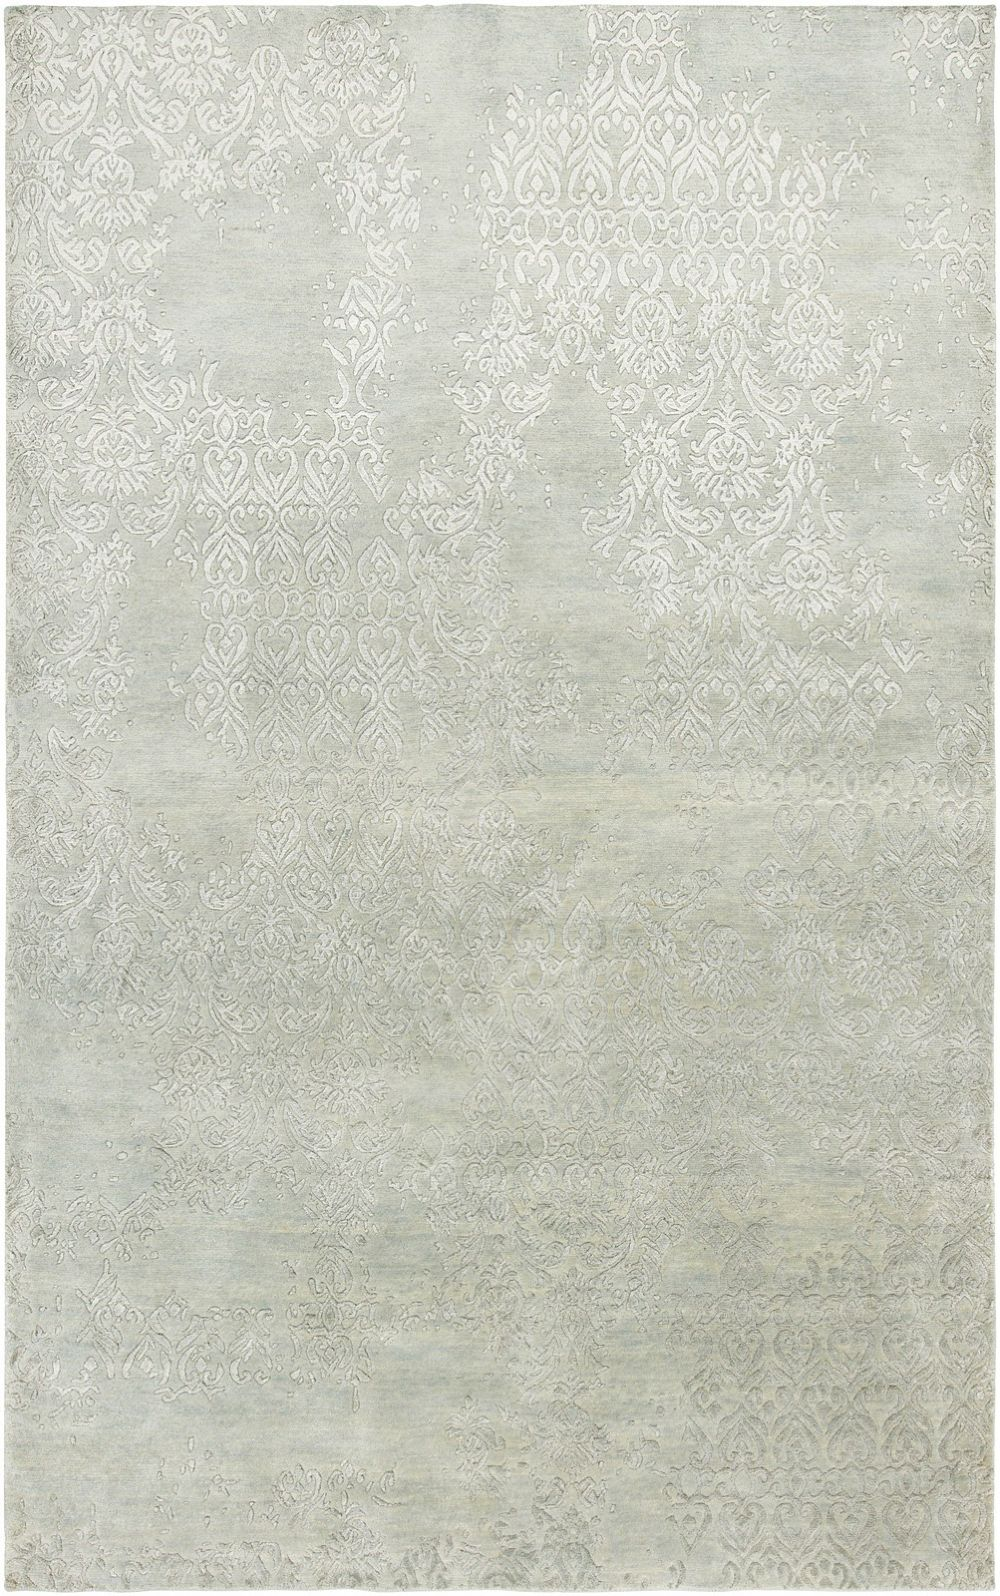 rizzy rugs avante-garde transitional area rug collection